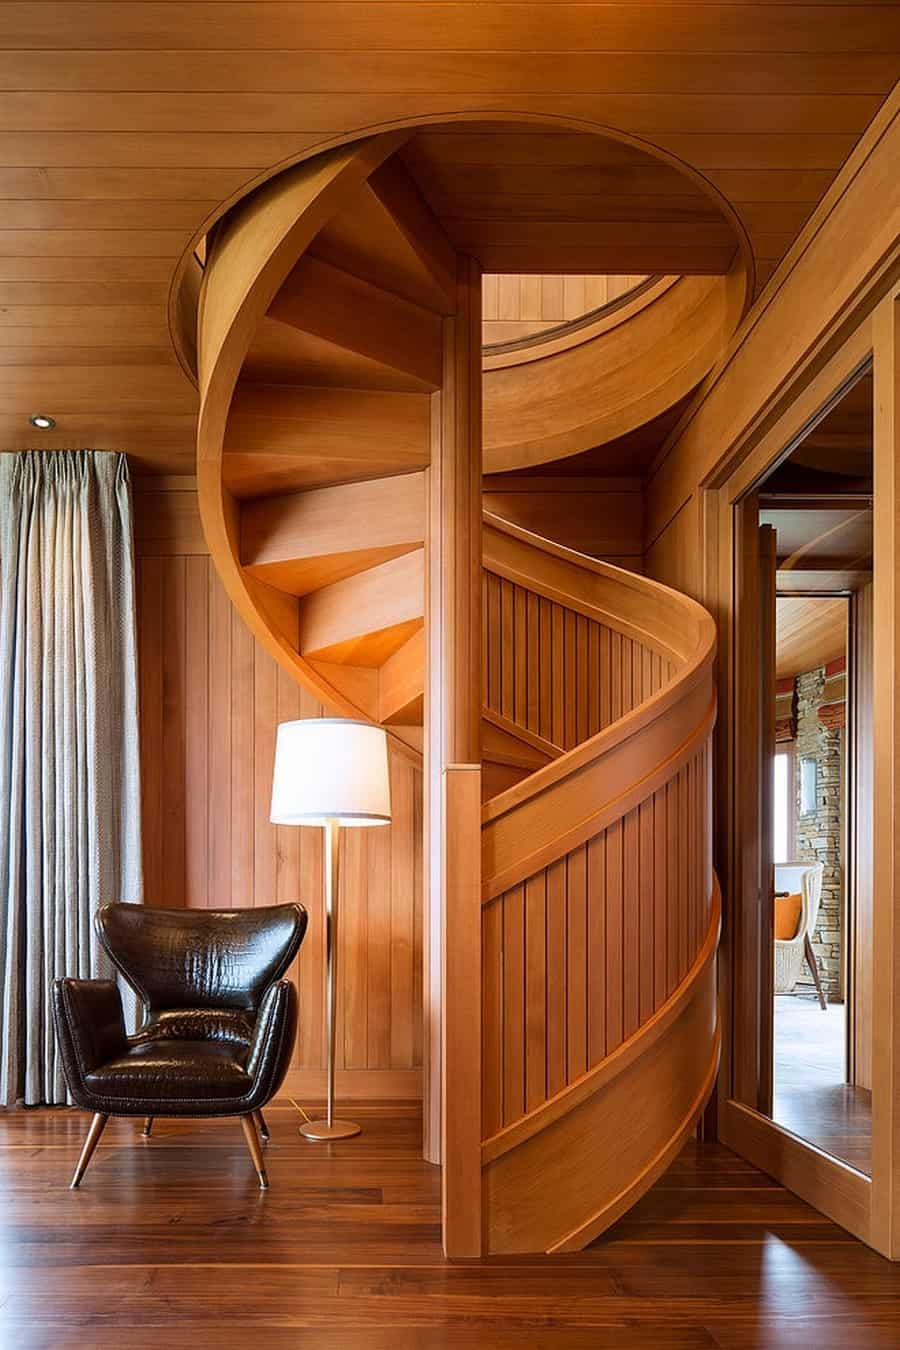 attic furniture ideas - Flowing Spiral Wood Staircase is a Work of Art